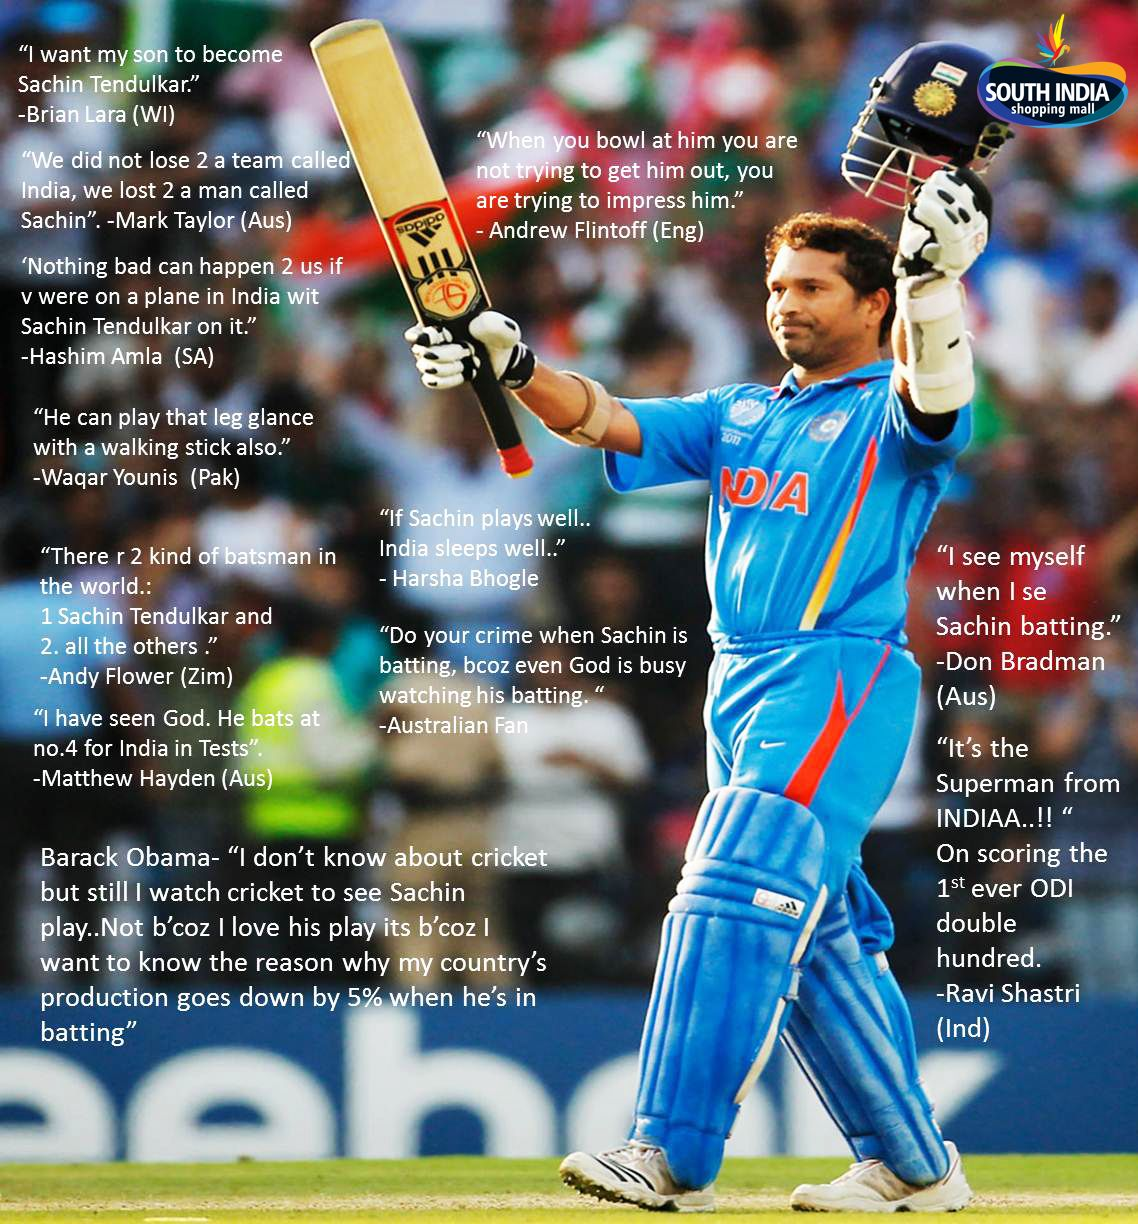 Famous quotes from Sachin Tendulkar (Image copyrights